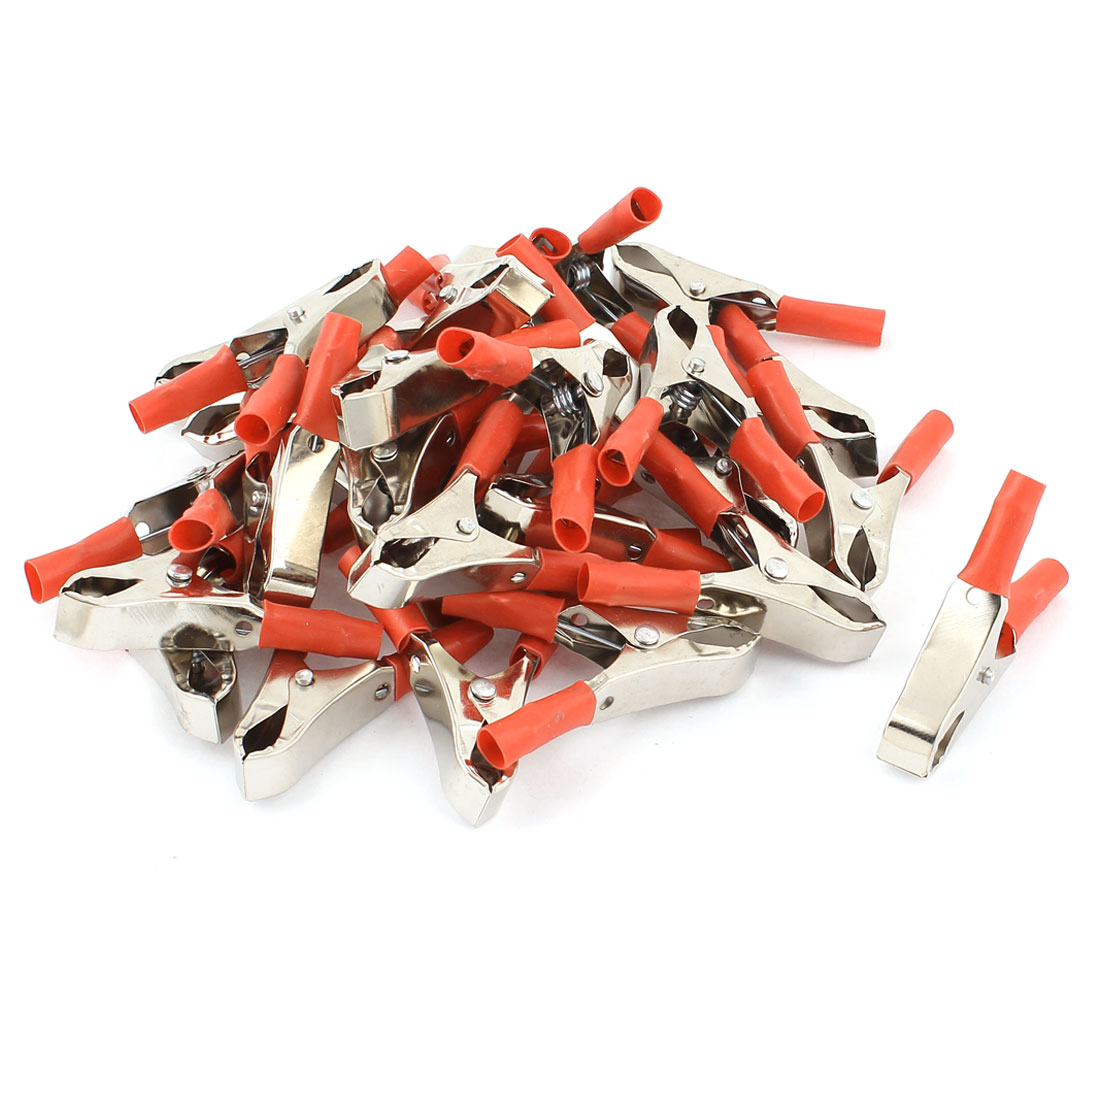 30 Pcs Red Insulated Alligator Clip Car Battery Test Connector 30A